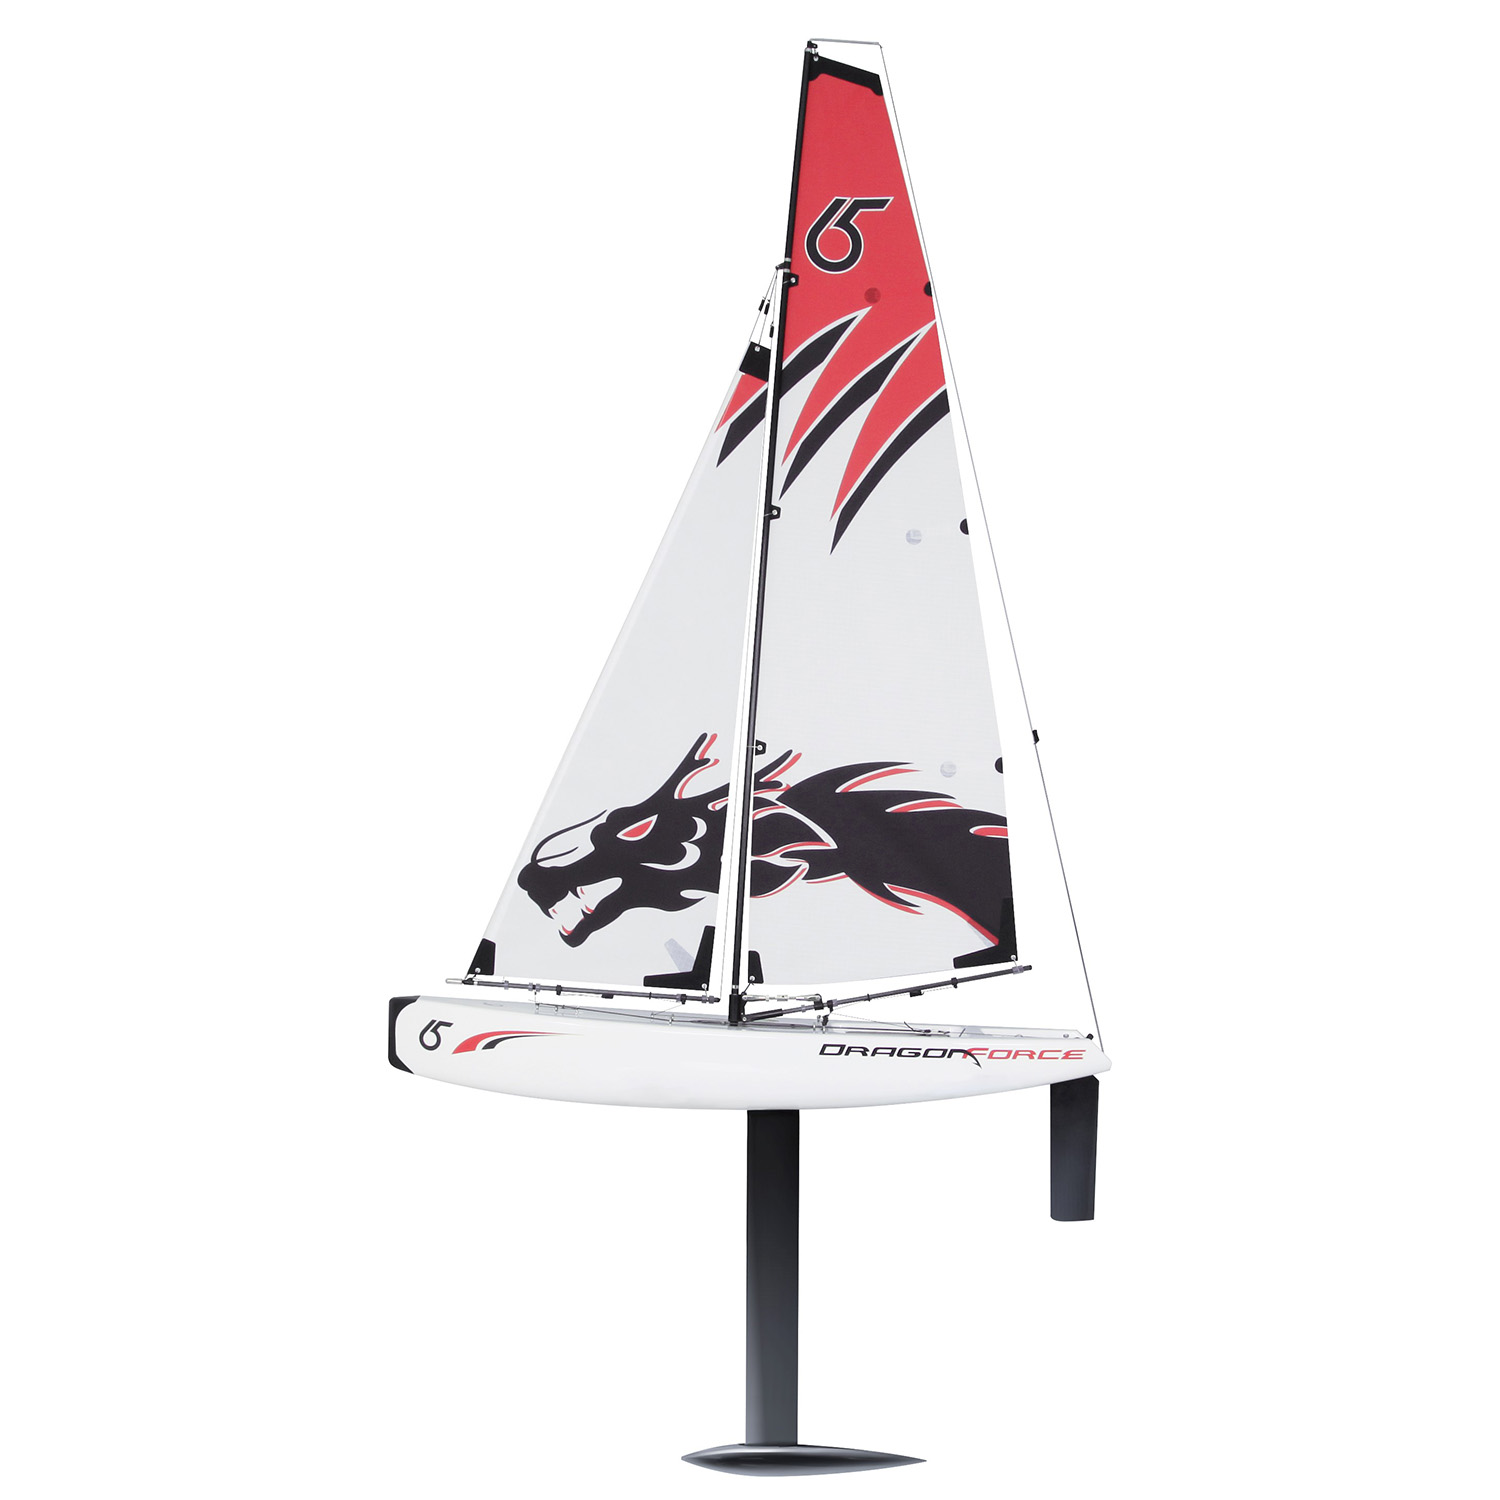 Joysway DragonForce 65 V5 2 4GHz RTR DF65 RG65 Class RC Yacht - White  Edition (includes Transmitter & Receiver)